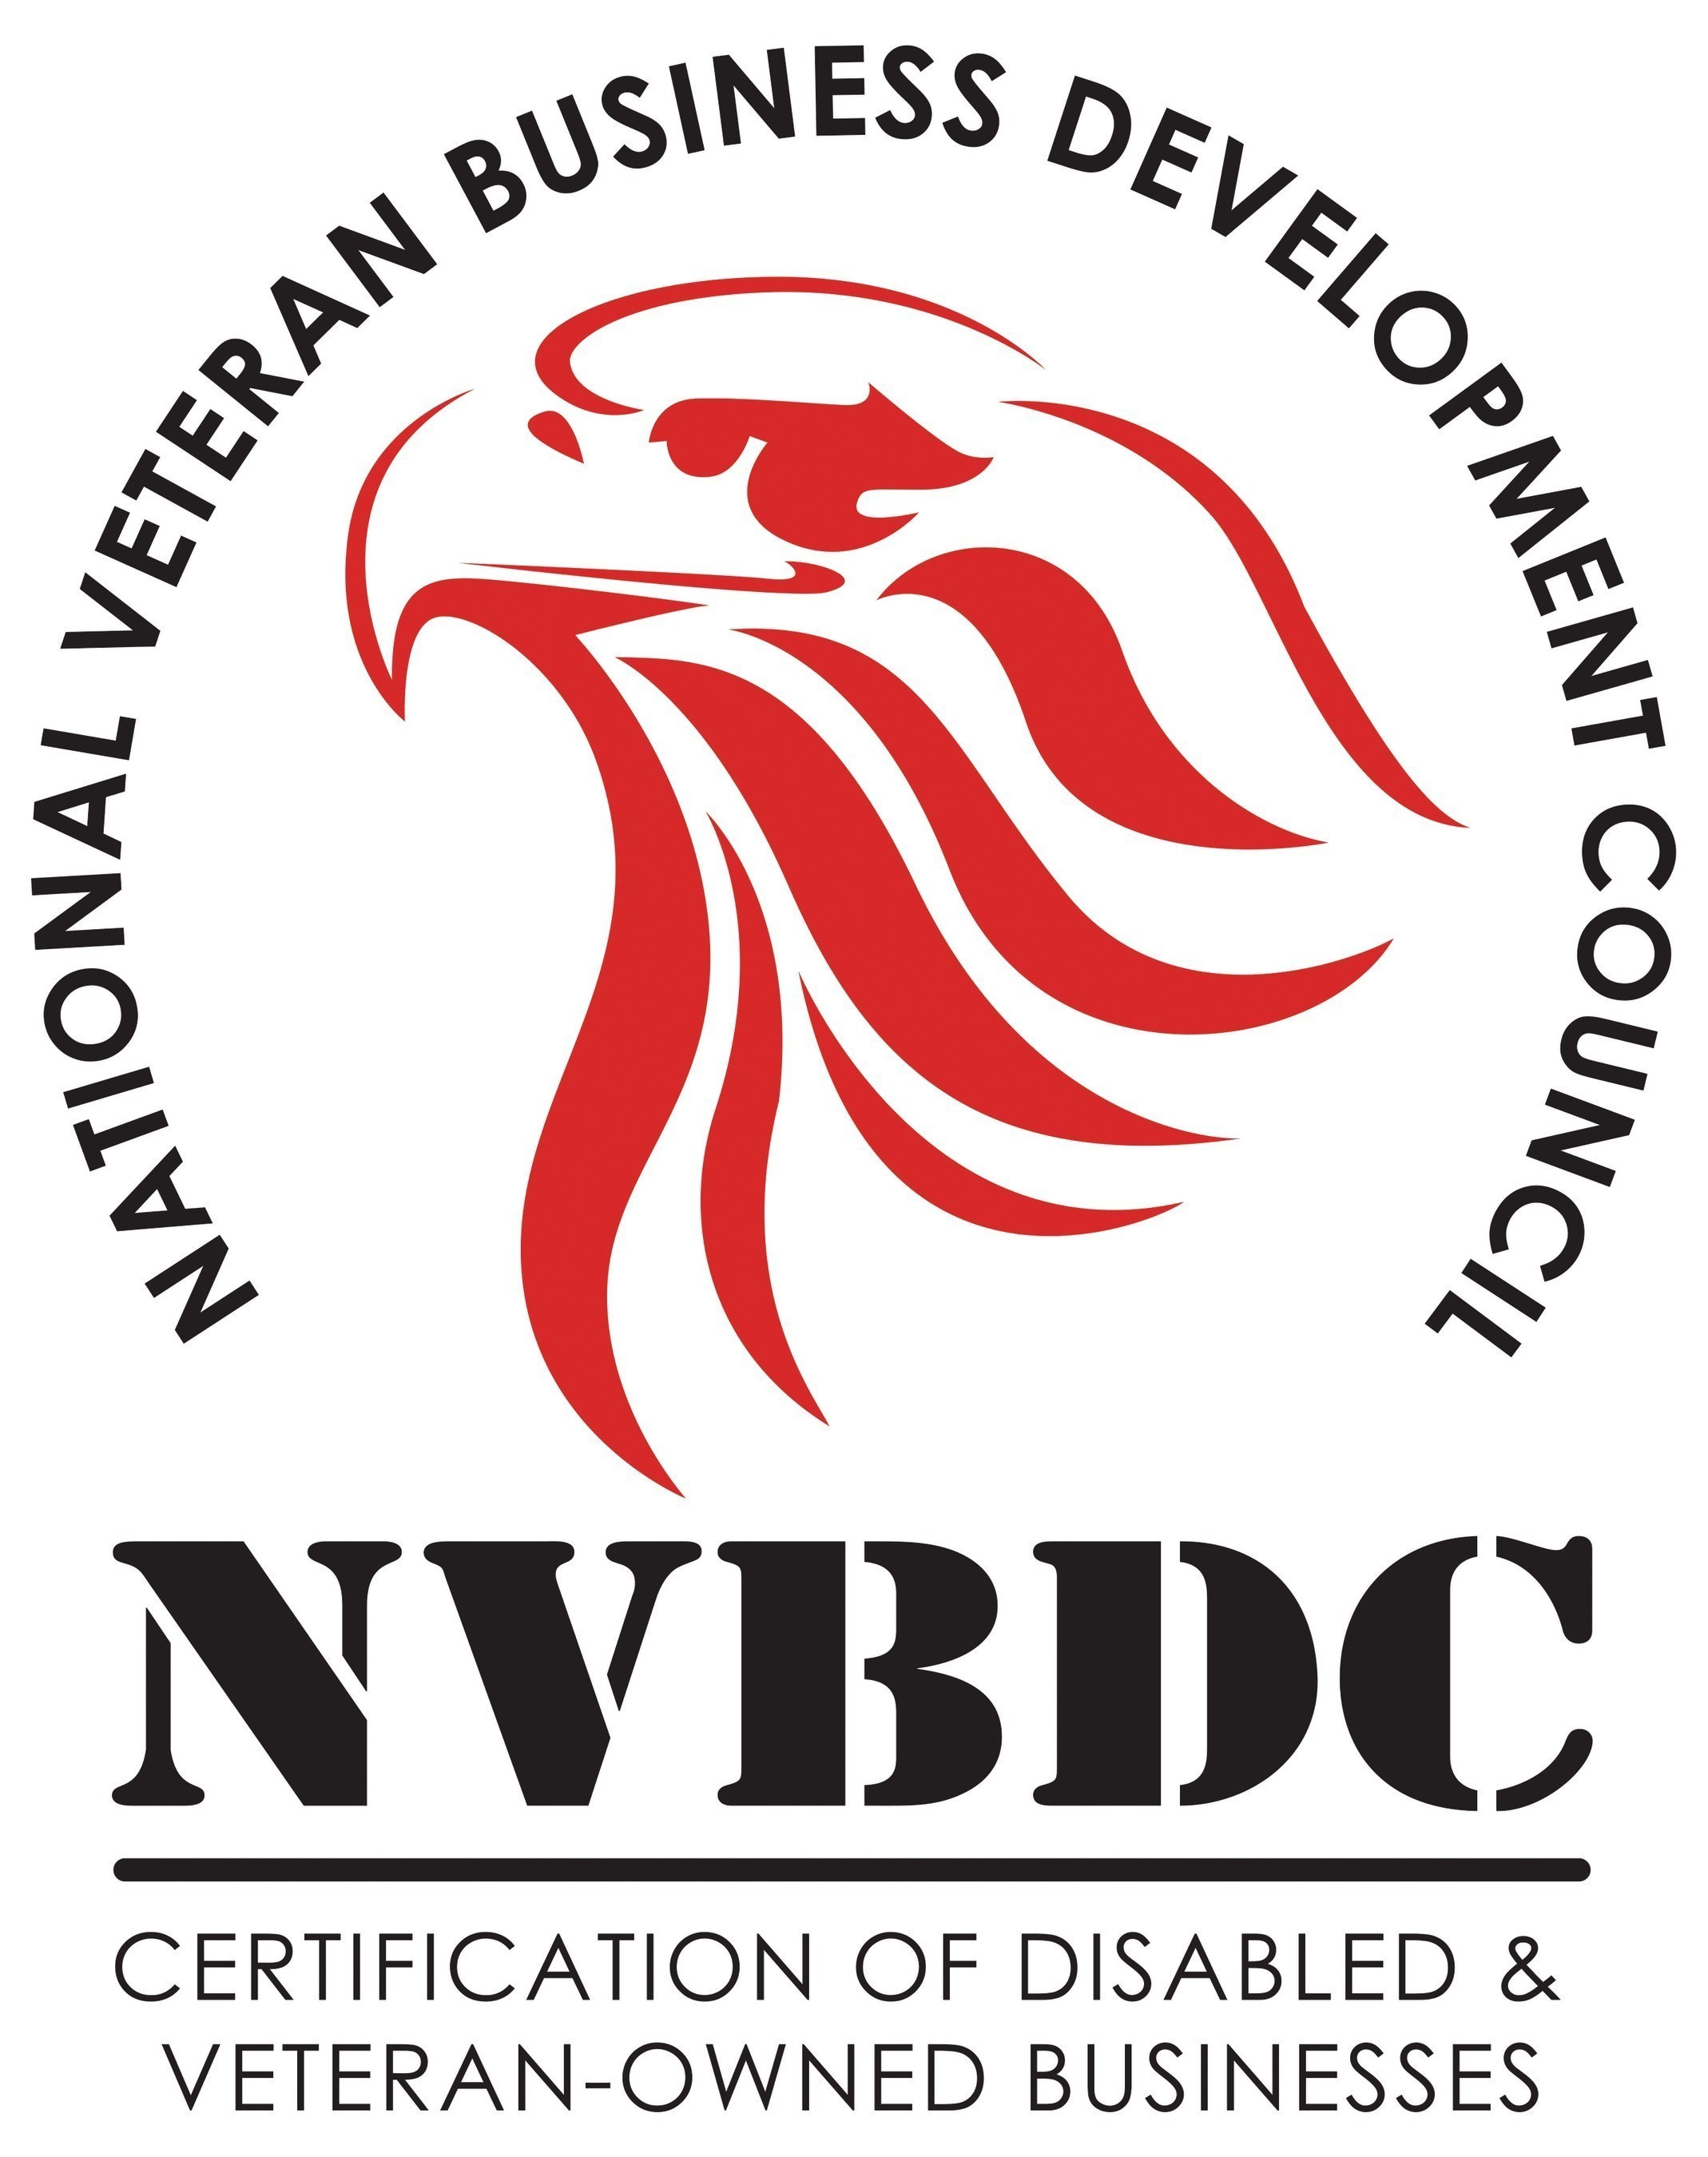 America's leading third party certification of Disabled and Veteran Owned Businesses of all sizes.